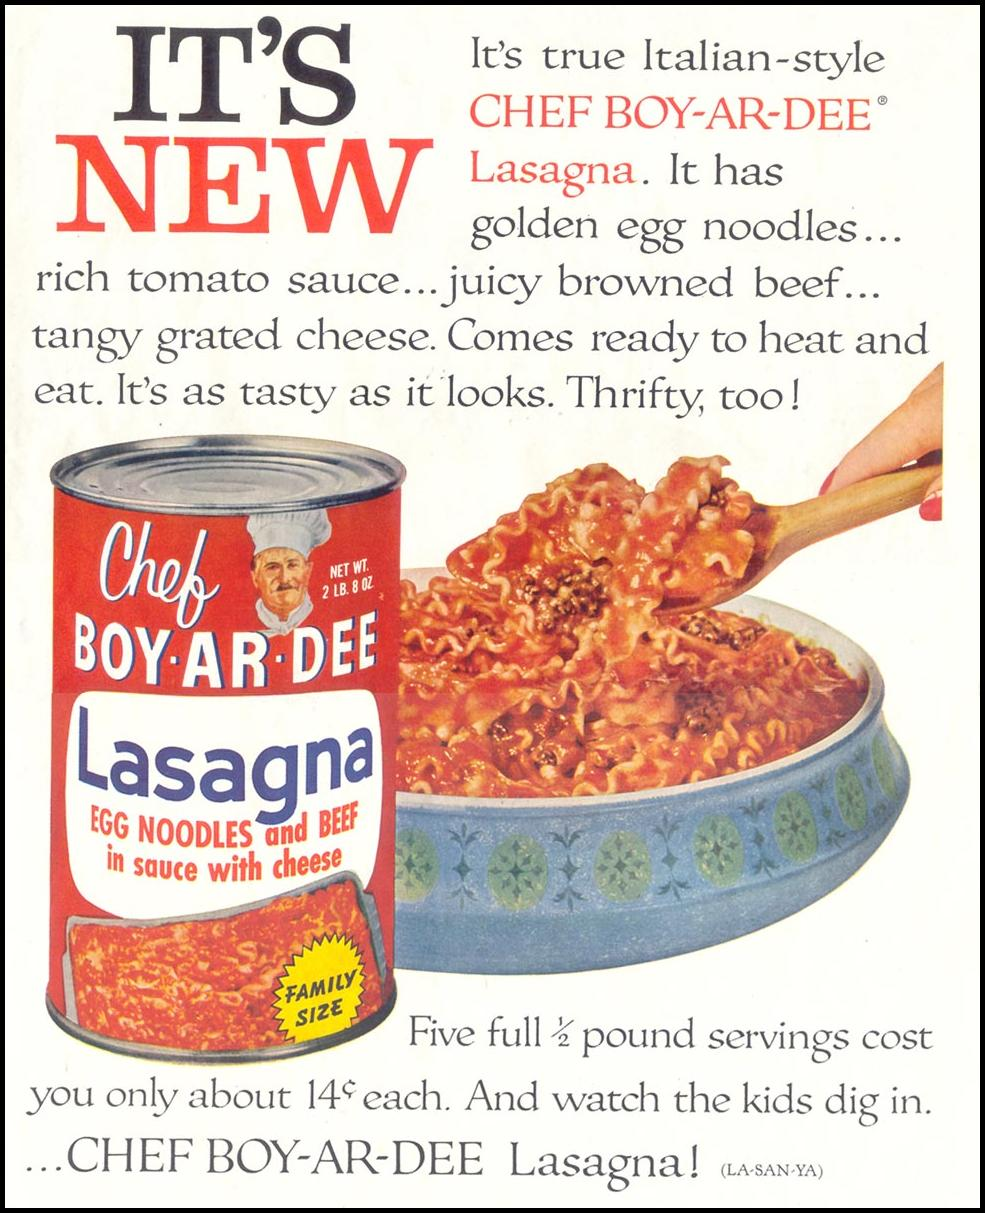 CHEF BOY-AR-DEE LASAGNA SATURDAY EVENING POST 05/02/1959